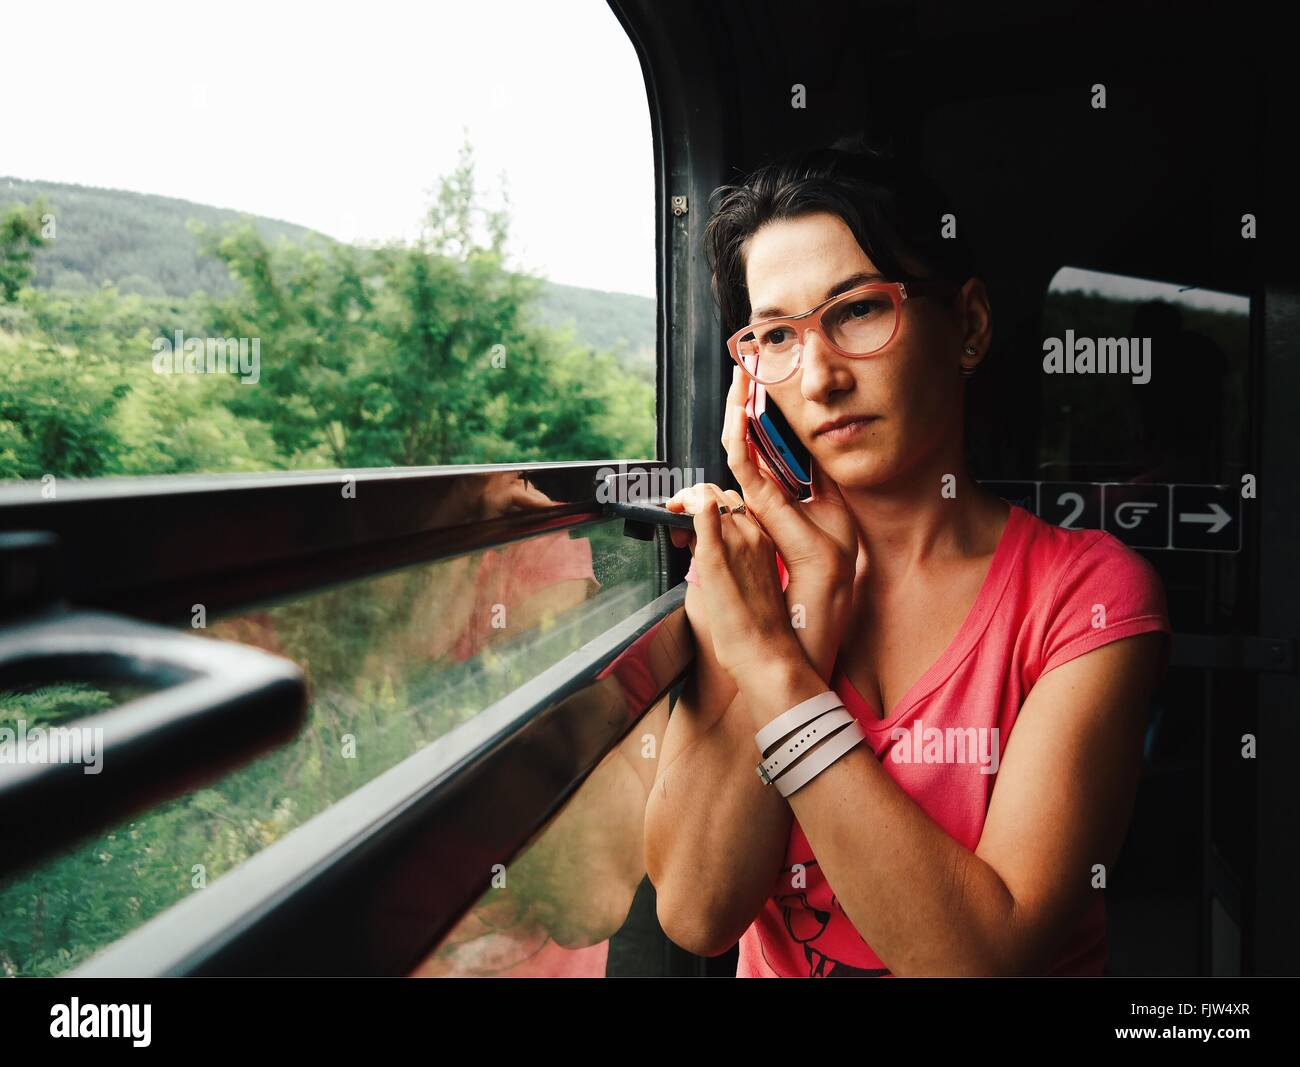 Close-up Of Woman On Train - Stock Image